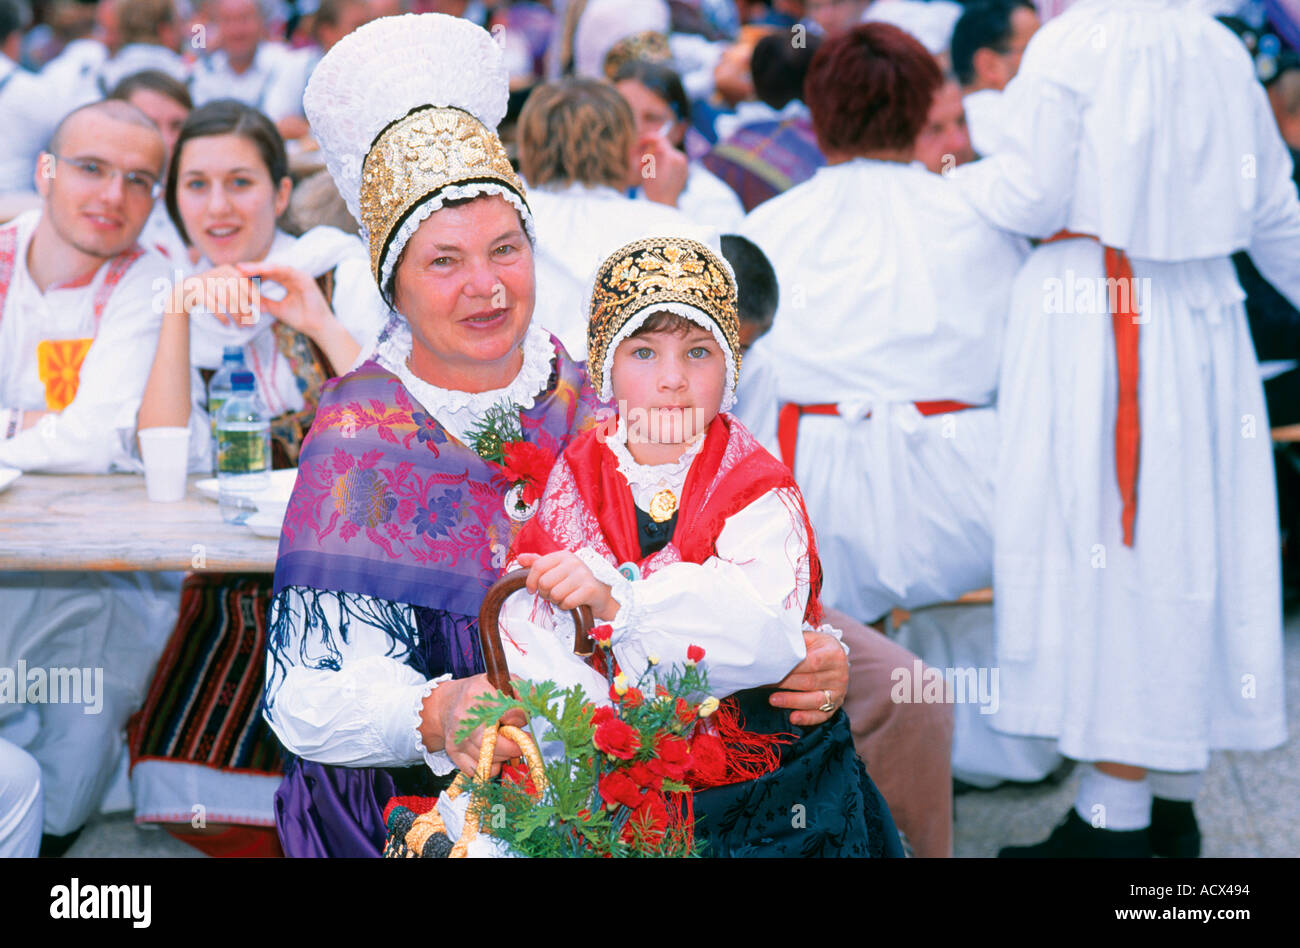 woman and child with traditional slovenian costume at the music and